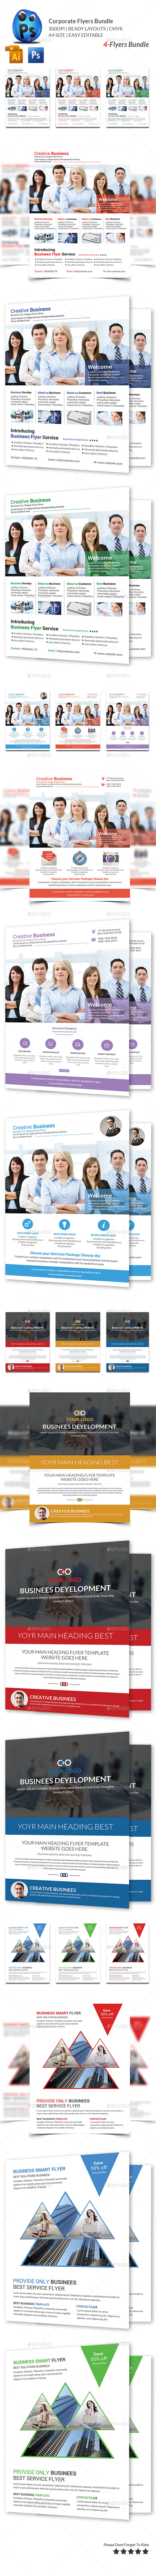 GraphicRiver Corporate Business 4 Flyer Bundle 10379617